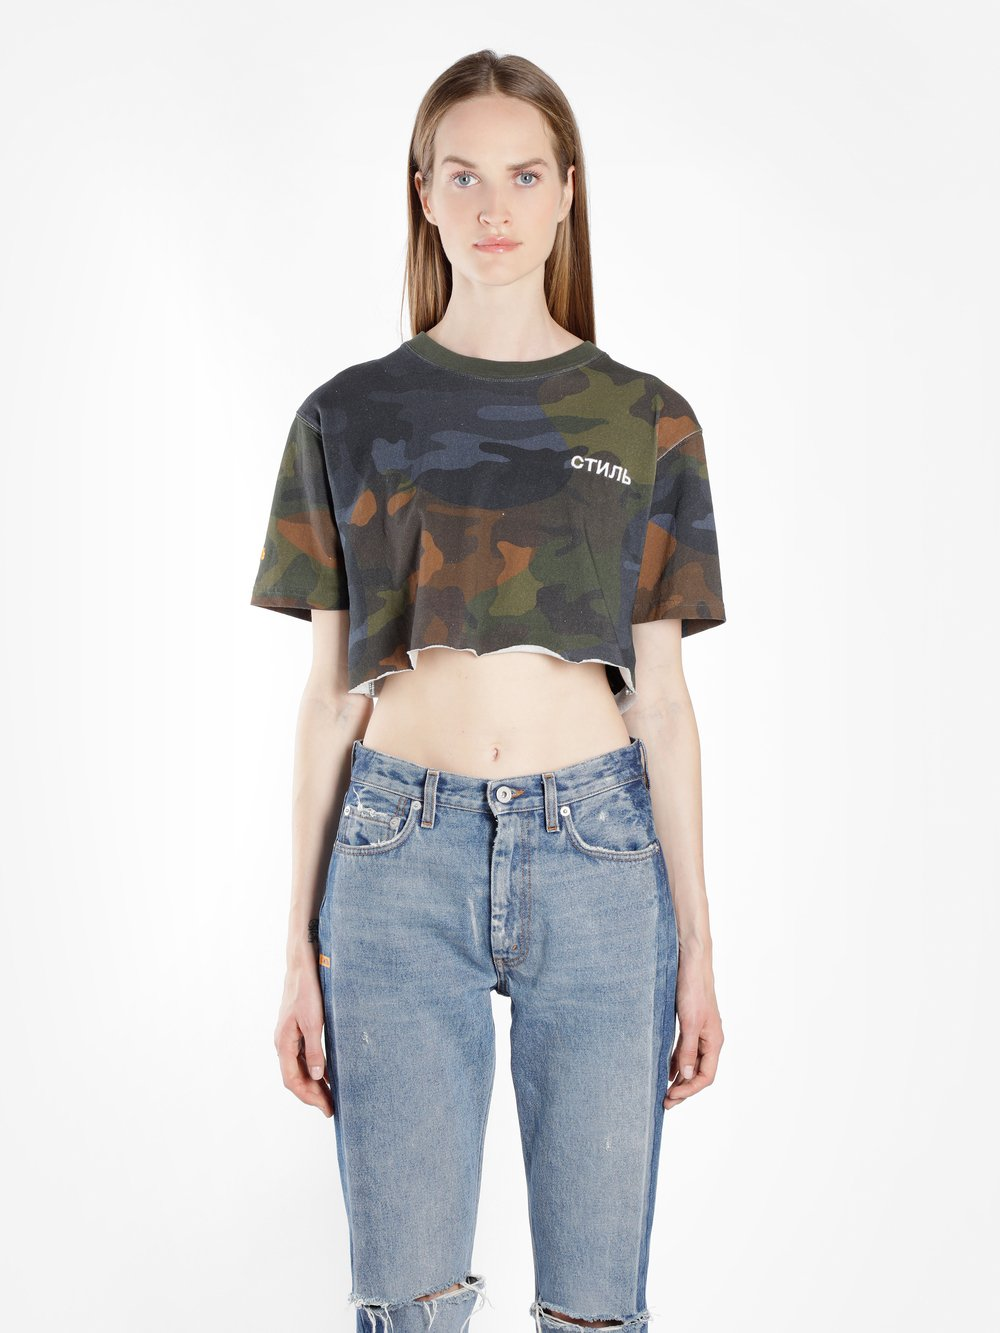 HERON PRESTON WOMEN'S GREEN CTNMB CAMO CROP T-SHIRT